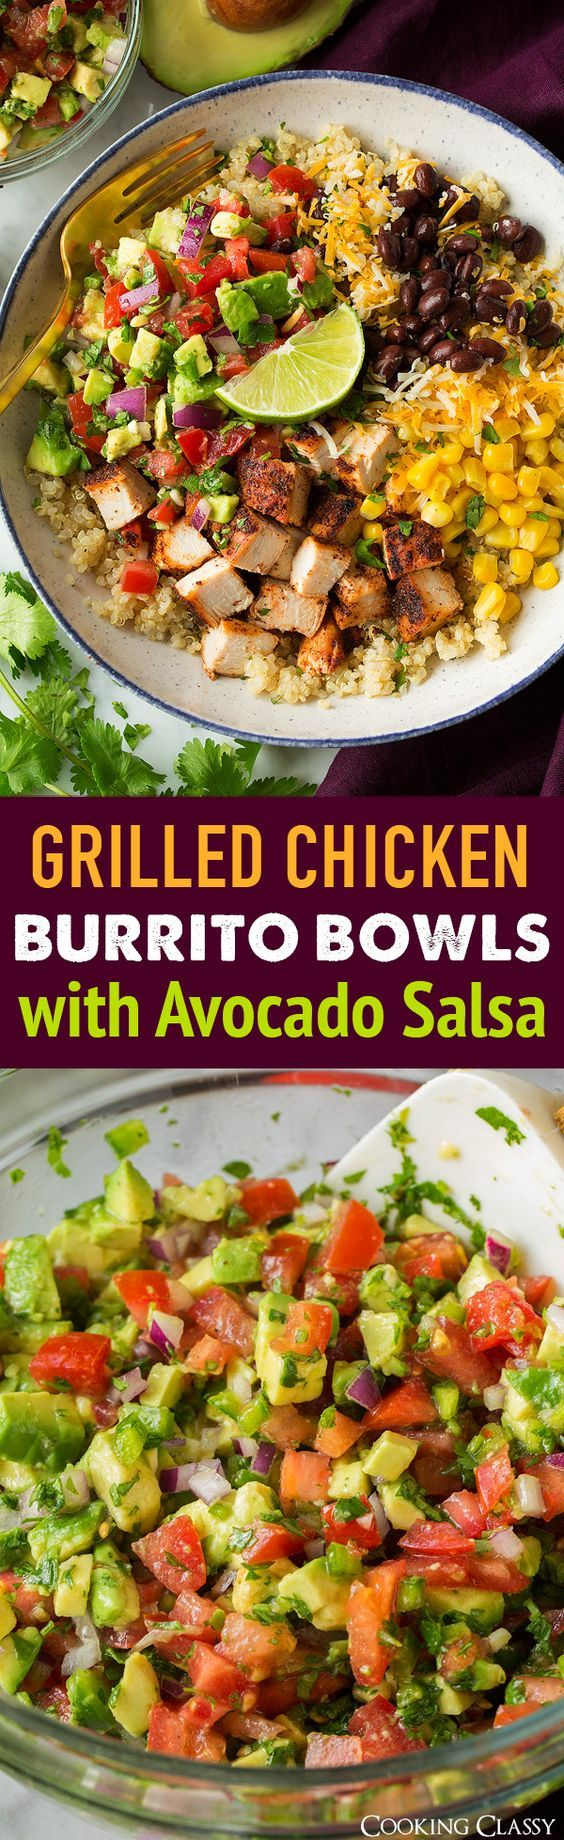 Grilled Chicken and Quinoa Burrito Bowls with Avocado Salsa | Cooking Classy